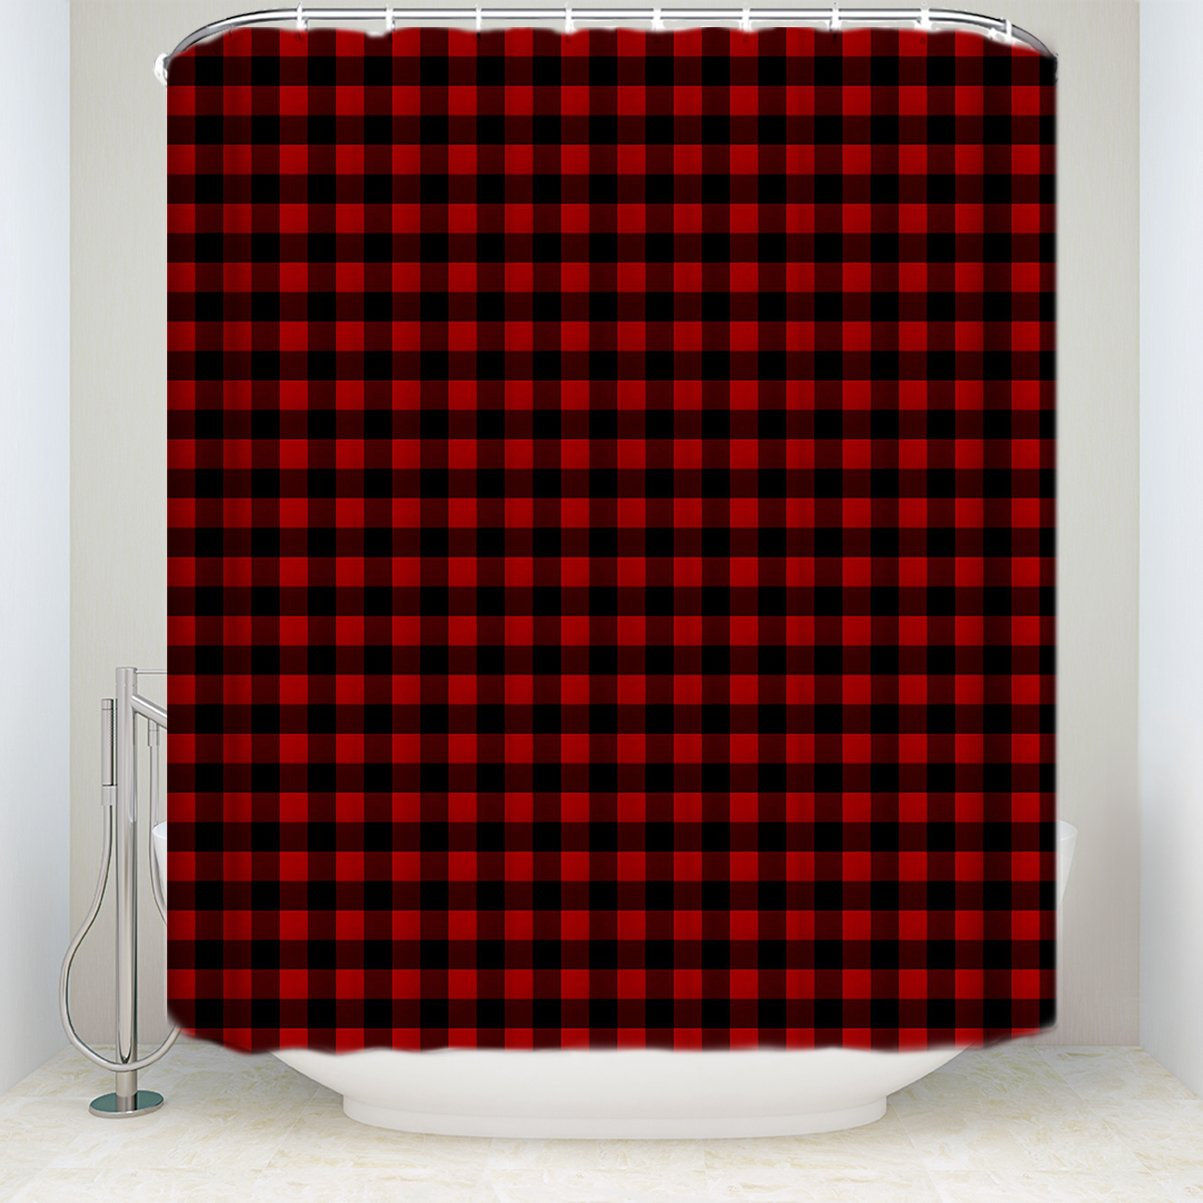 Mildew Resistant Waterproof Polyester Fabric Bath Curtains with Hooks Shower Curtain for Bathroom Showers and Bathtubs Red Black Buffalo Check Plaid Pattern 48 x 72 Inches